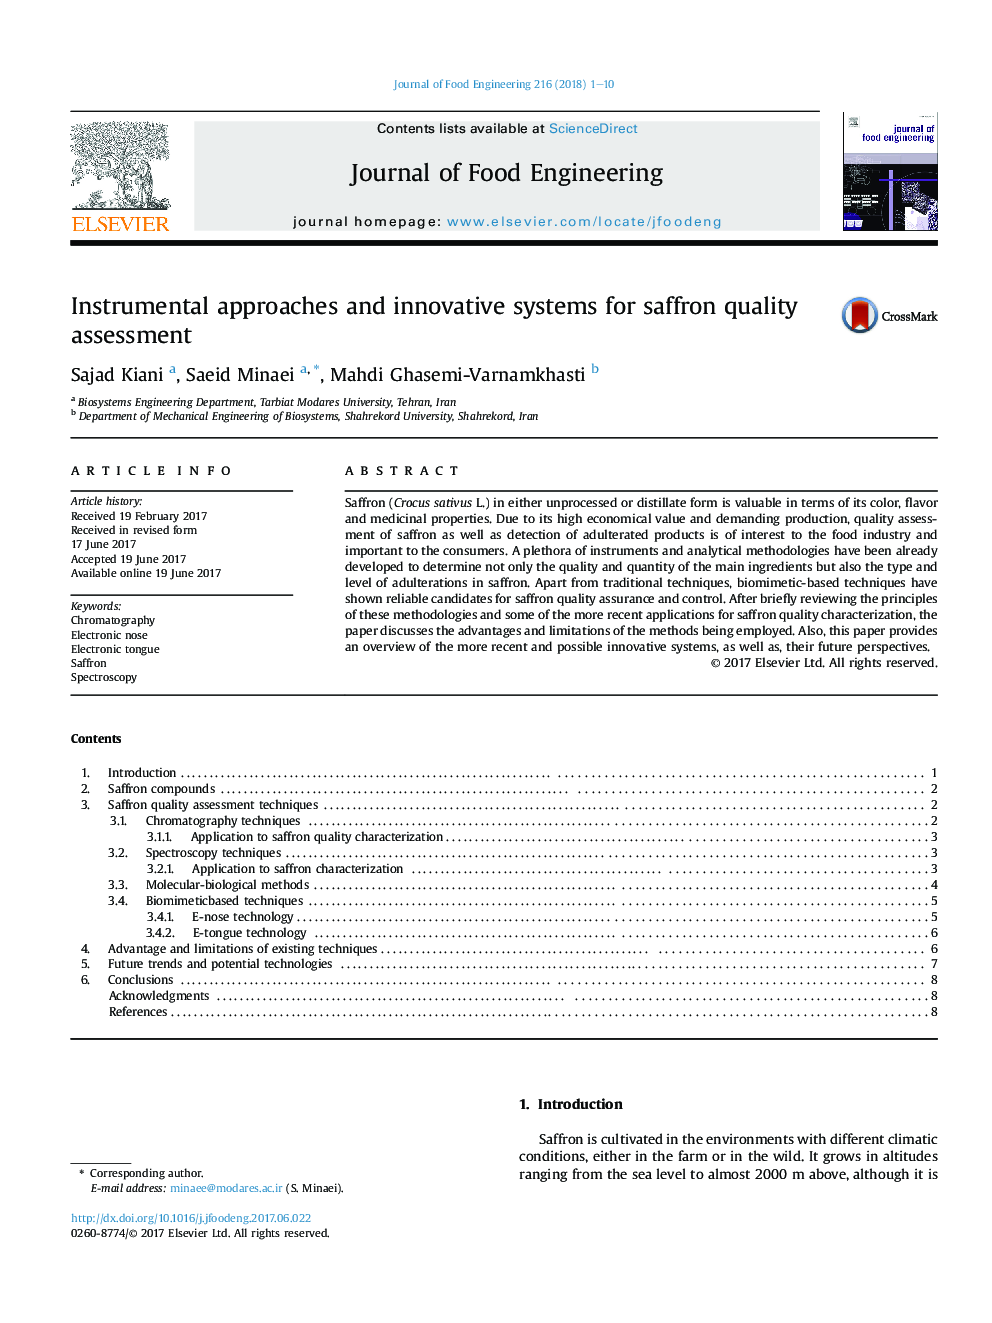 Instrumental approaches and innovative systems for saffron quality assessment